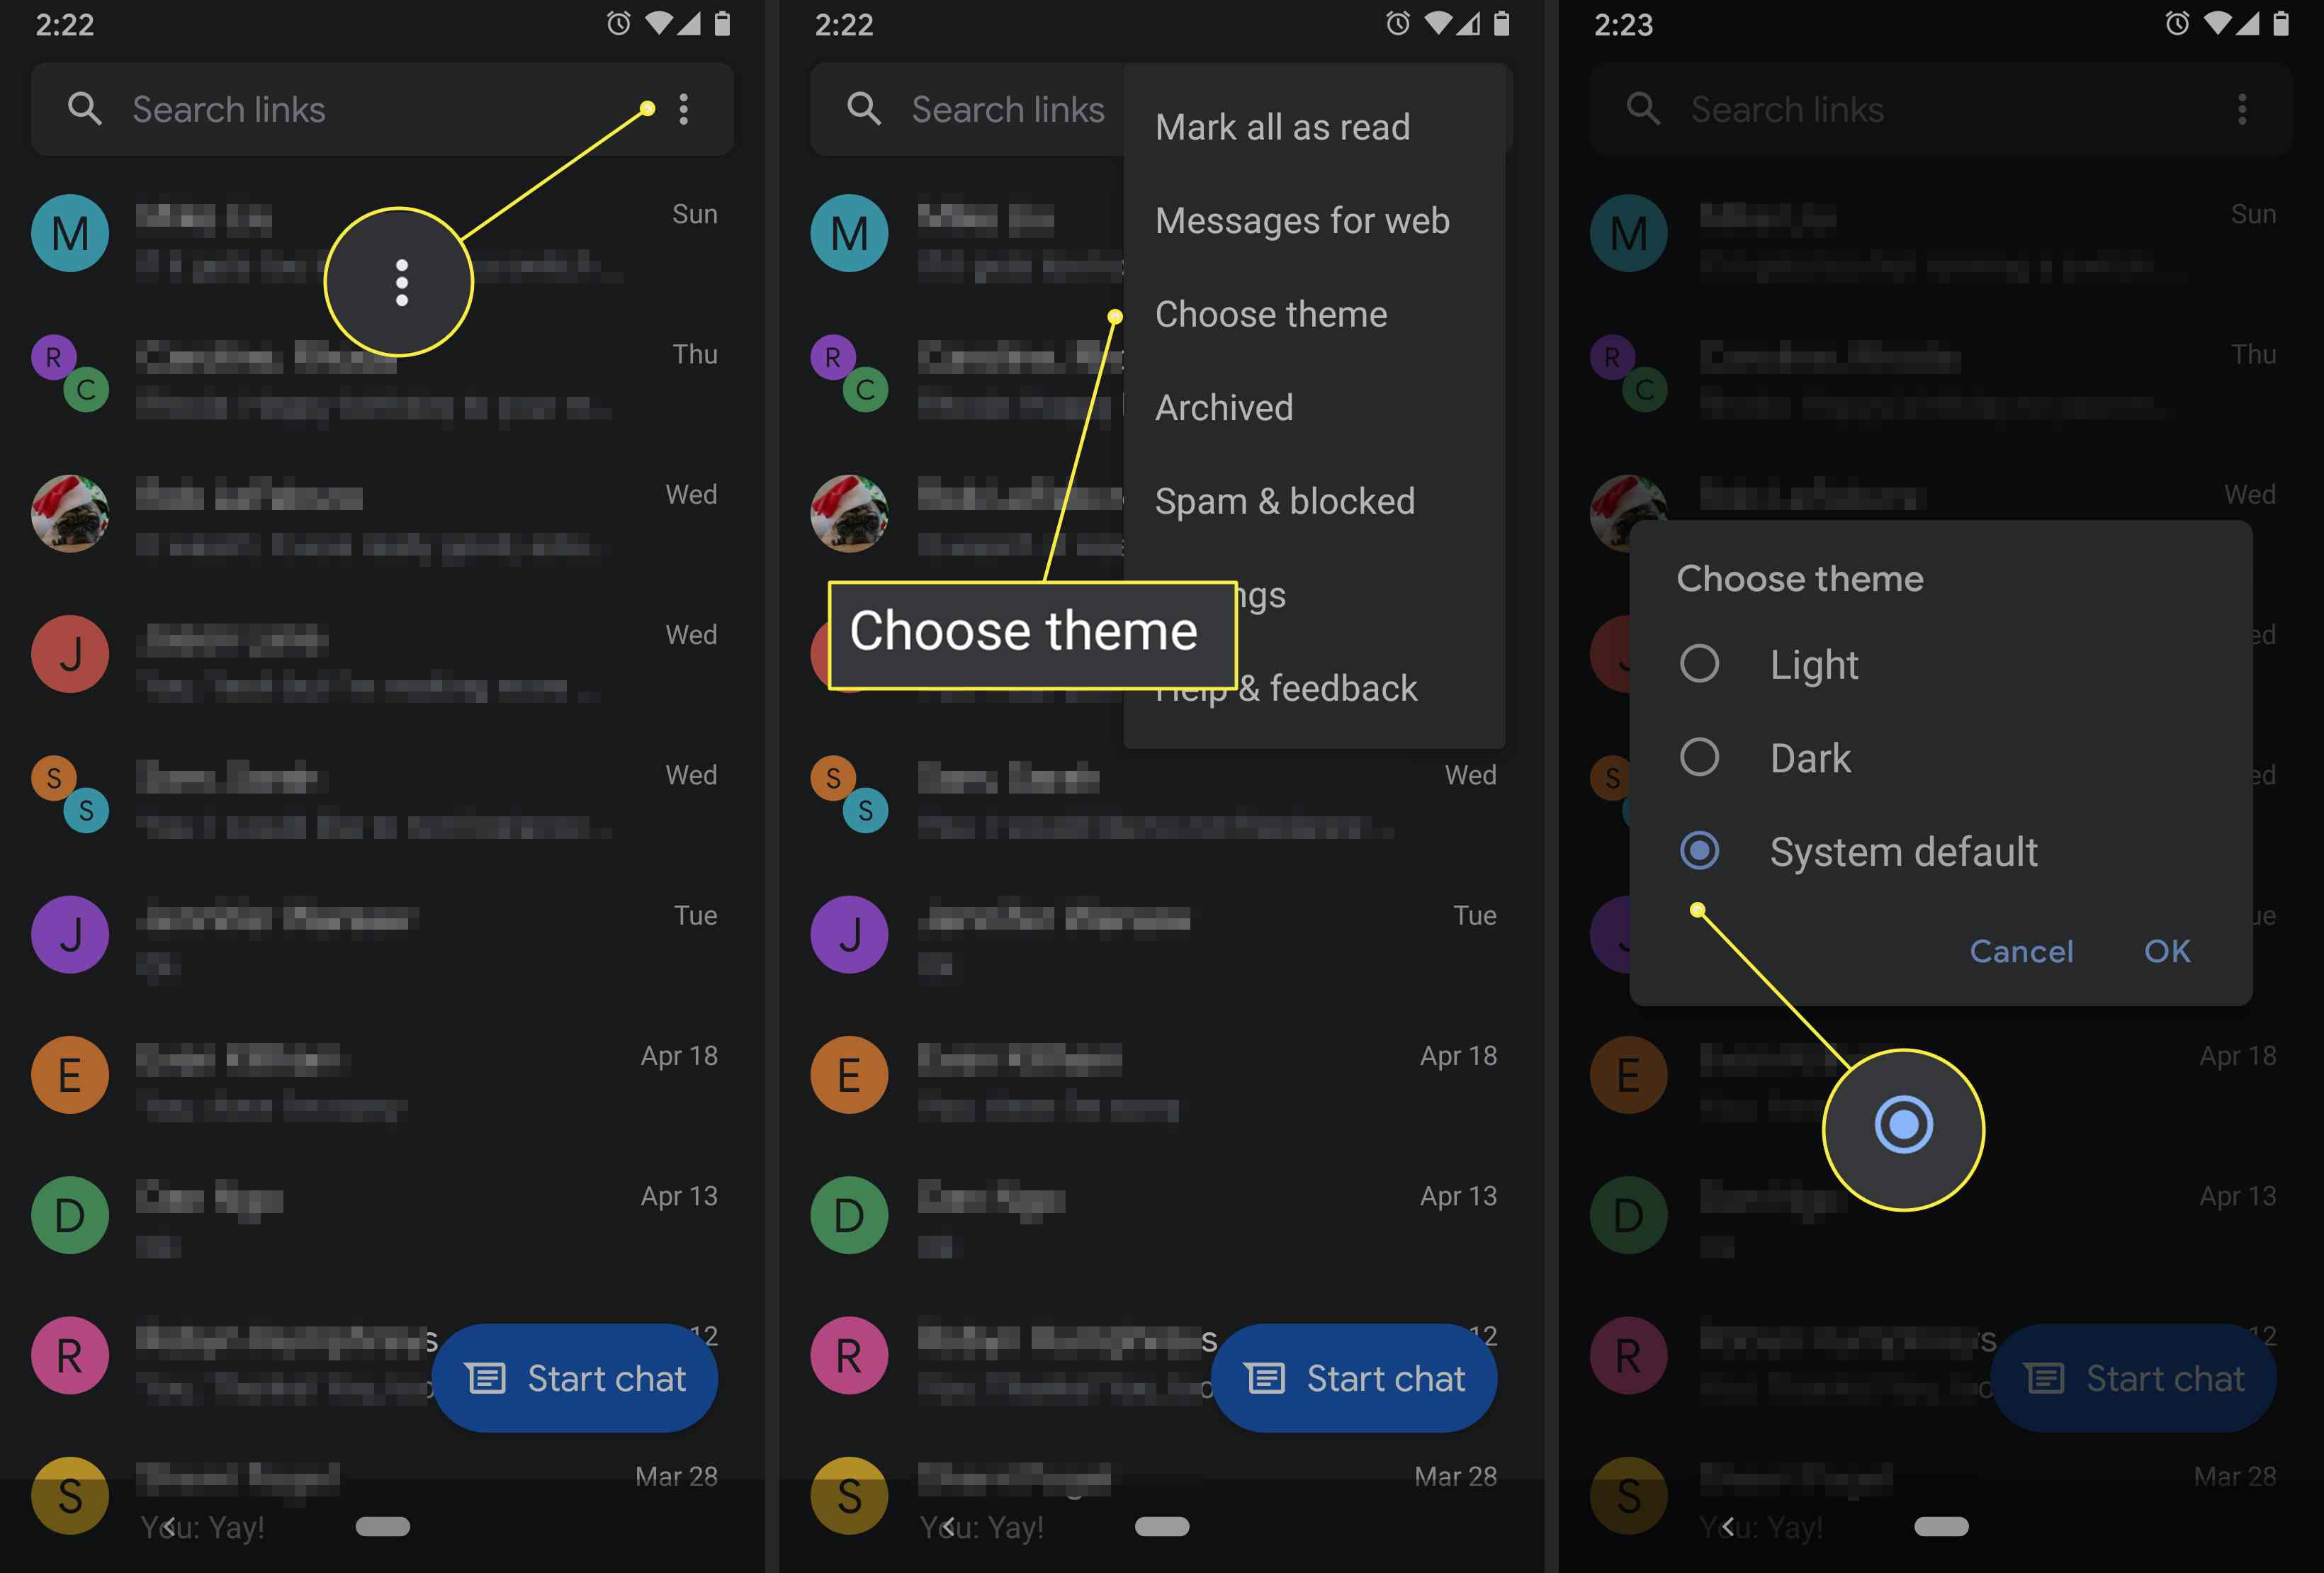 An Android user changes the theme of the Google Messages app